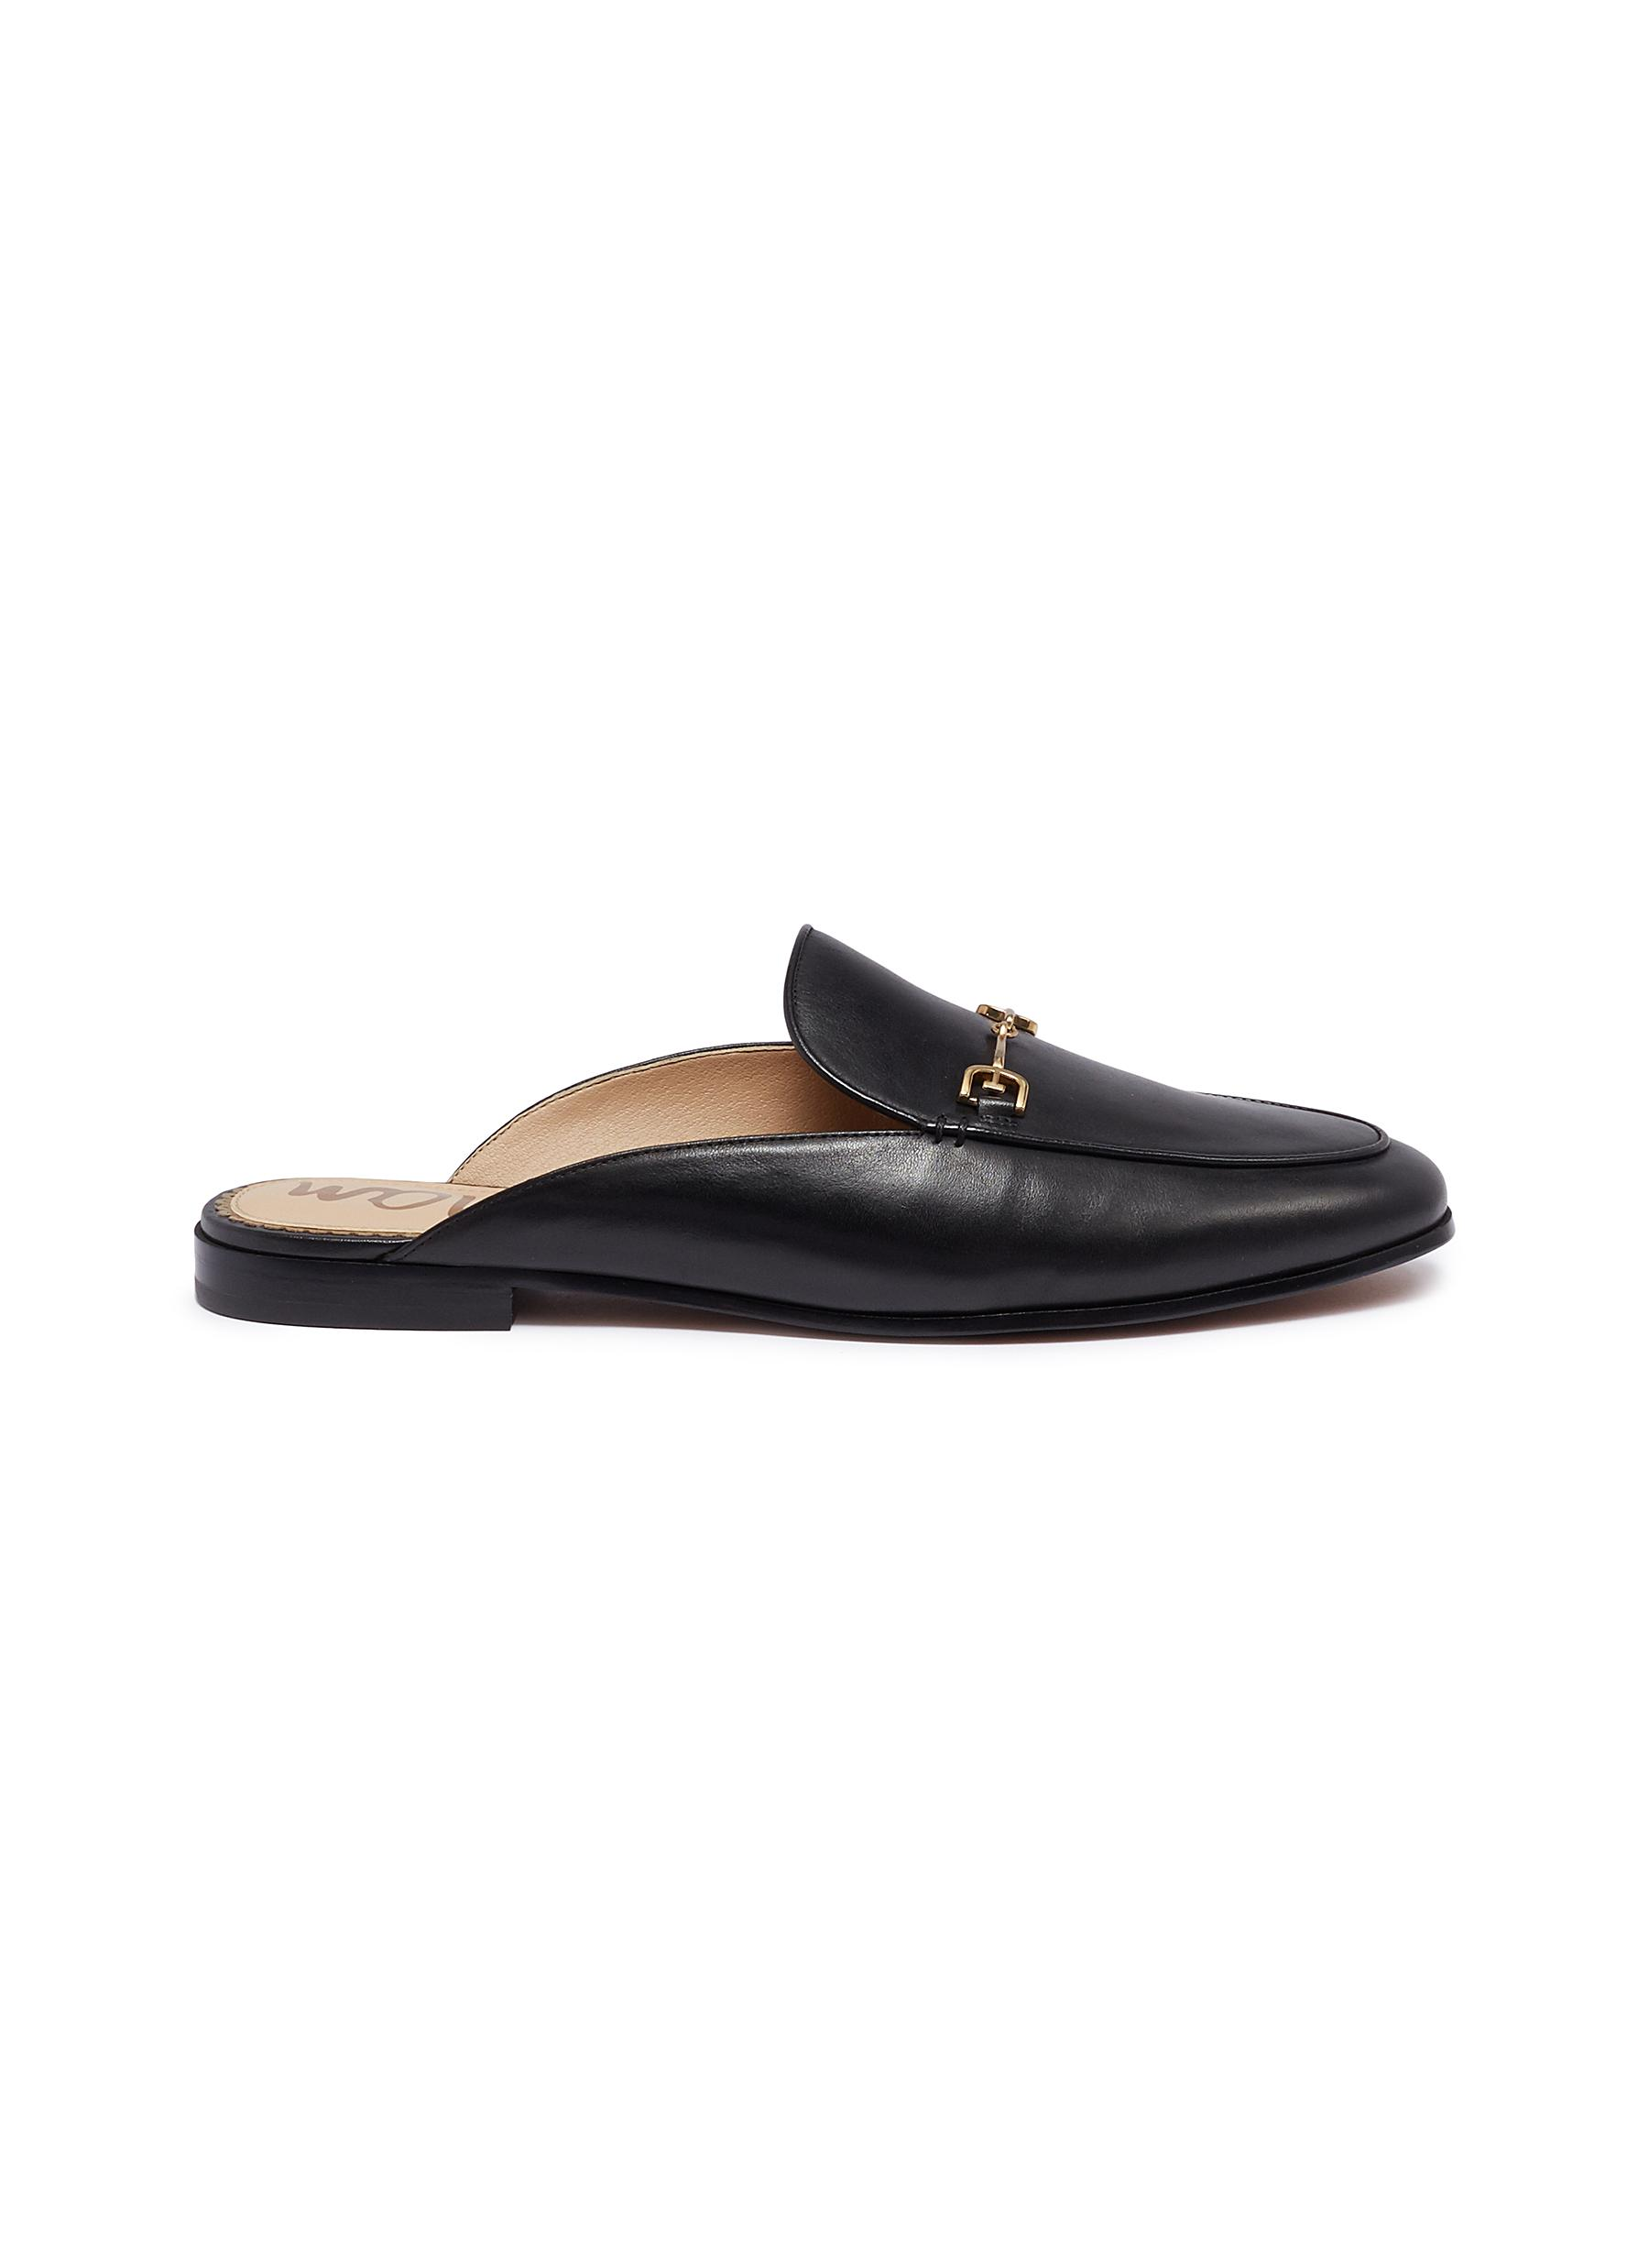 Linnie horsebit leather loafer slides by Sam Edelman